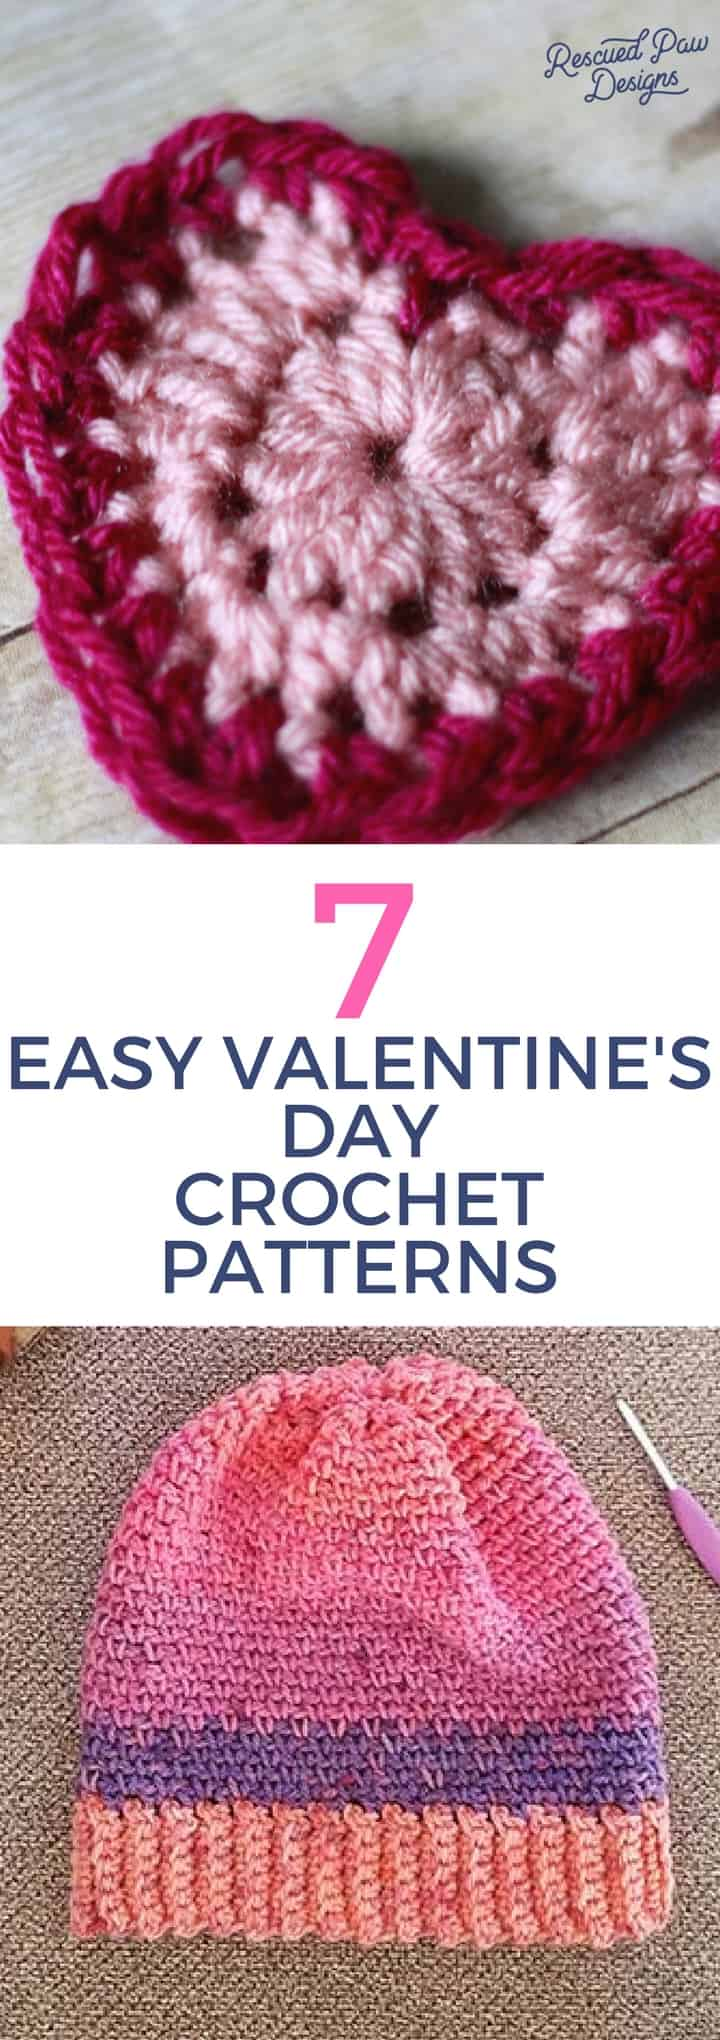 Simple Valentine's Day Crochet Patterns